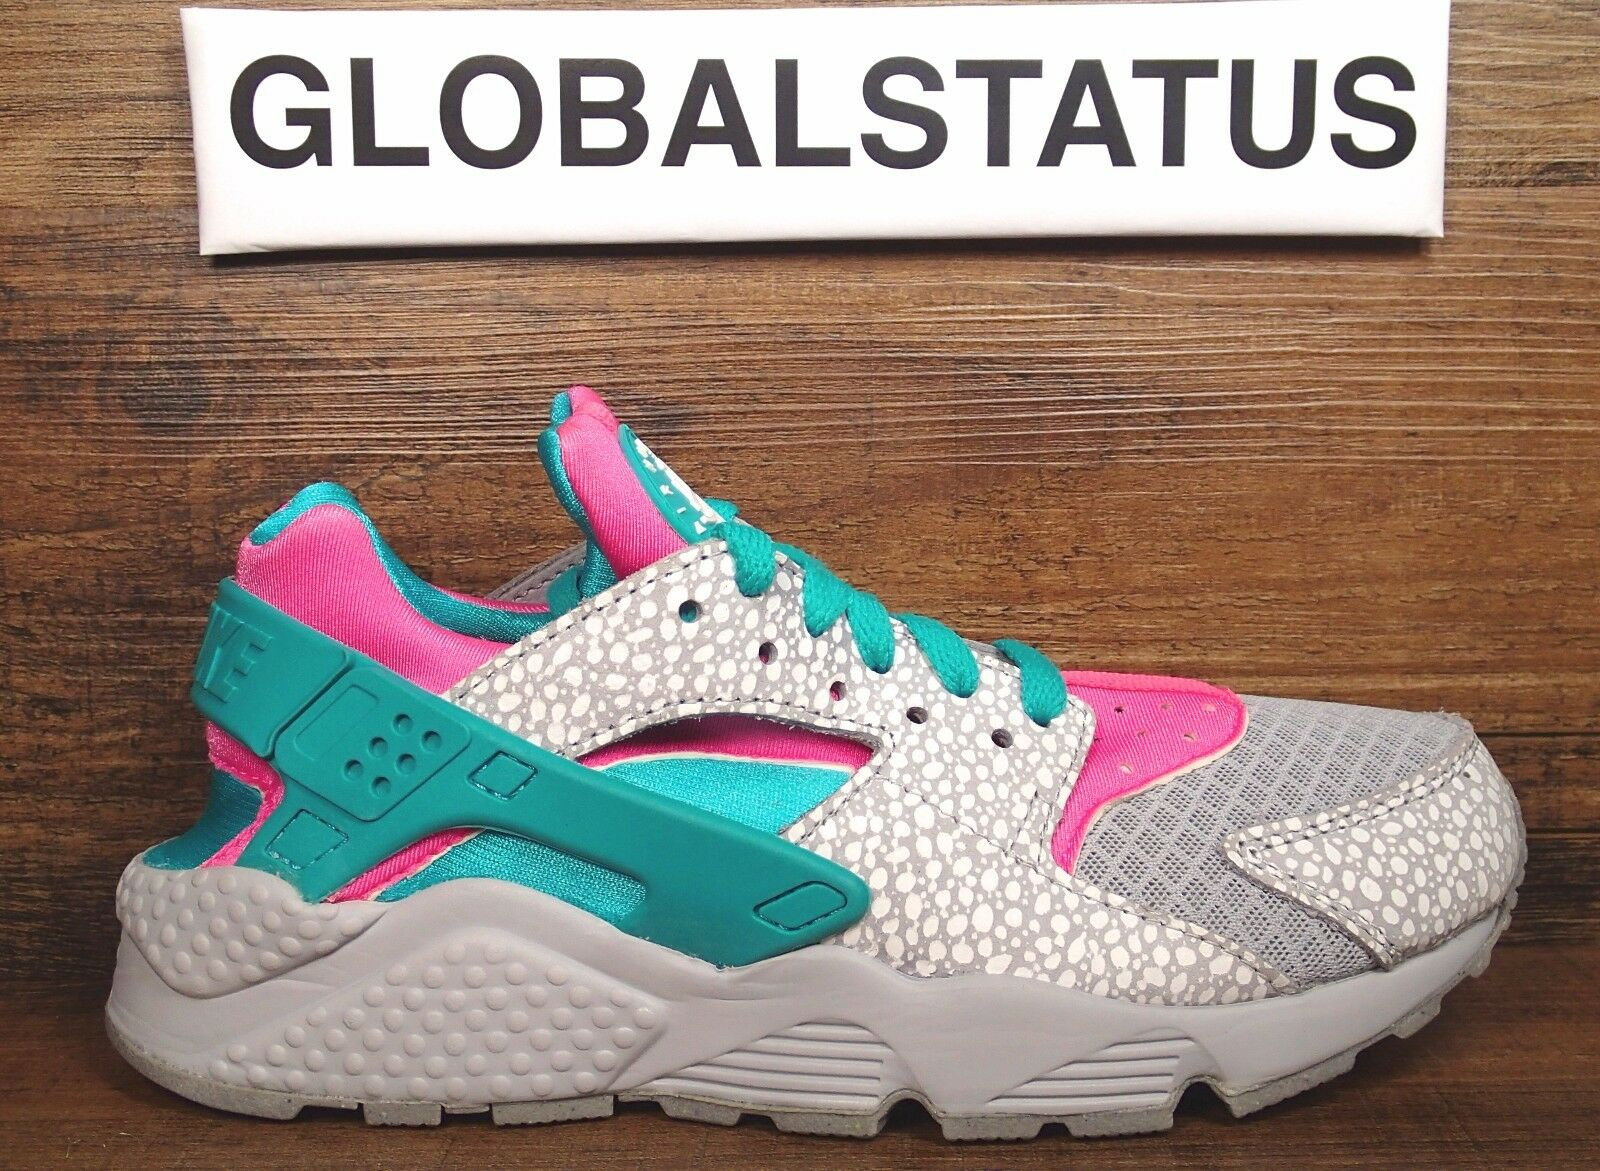 WOMENS NIKE ID AIR HUARACHE RUN PRM SAFARI GREY PINK TURQ SHOES 777331 991 Price reduction Comfortable and good-looking